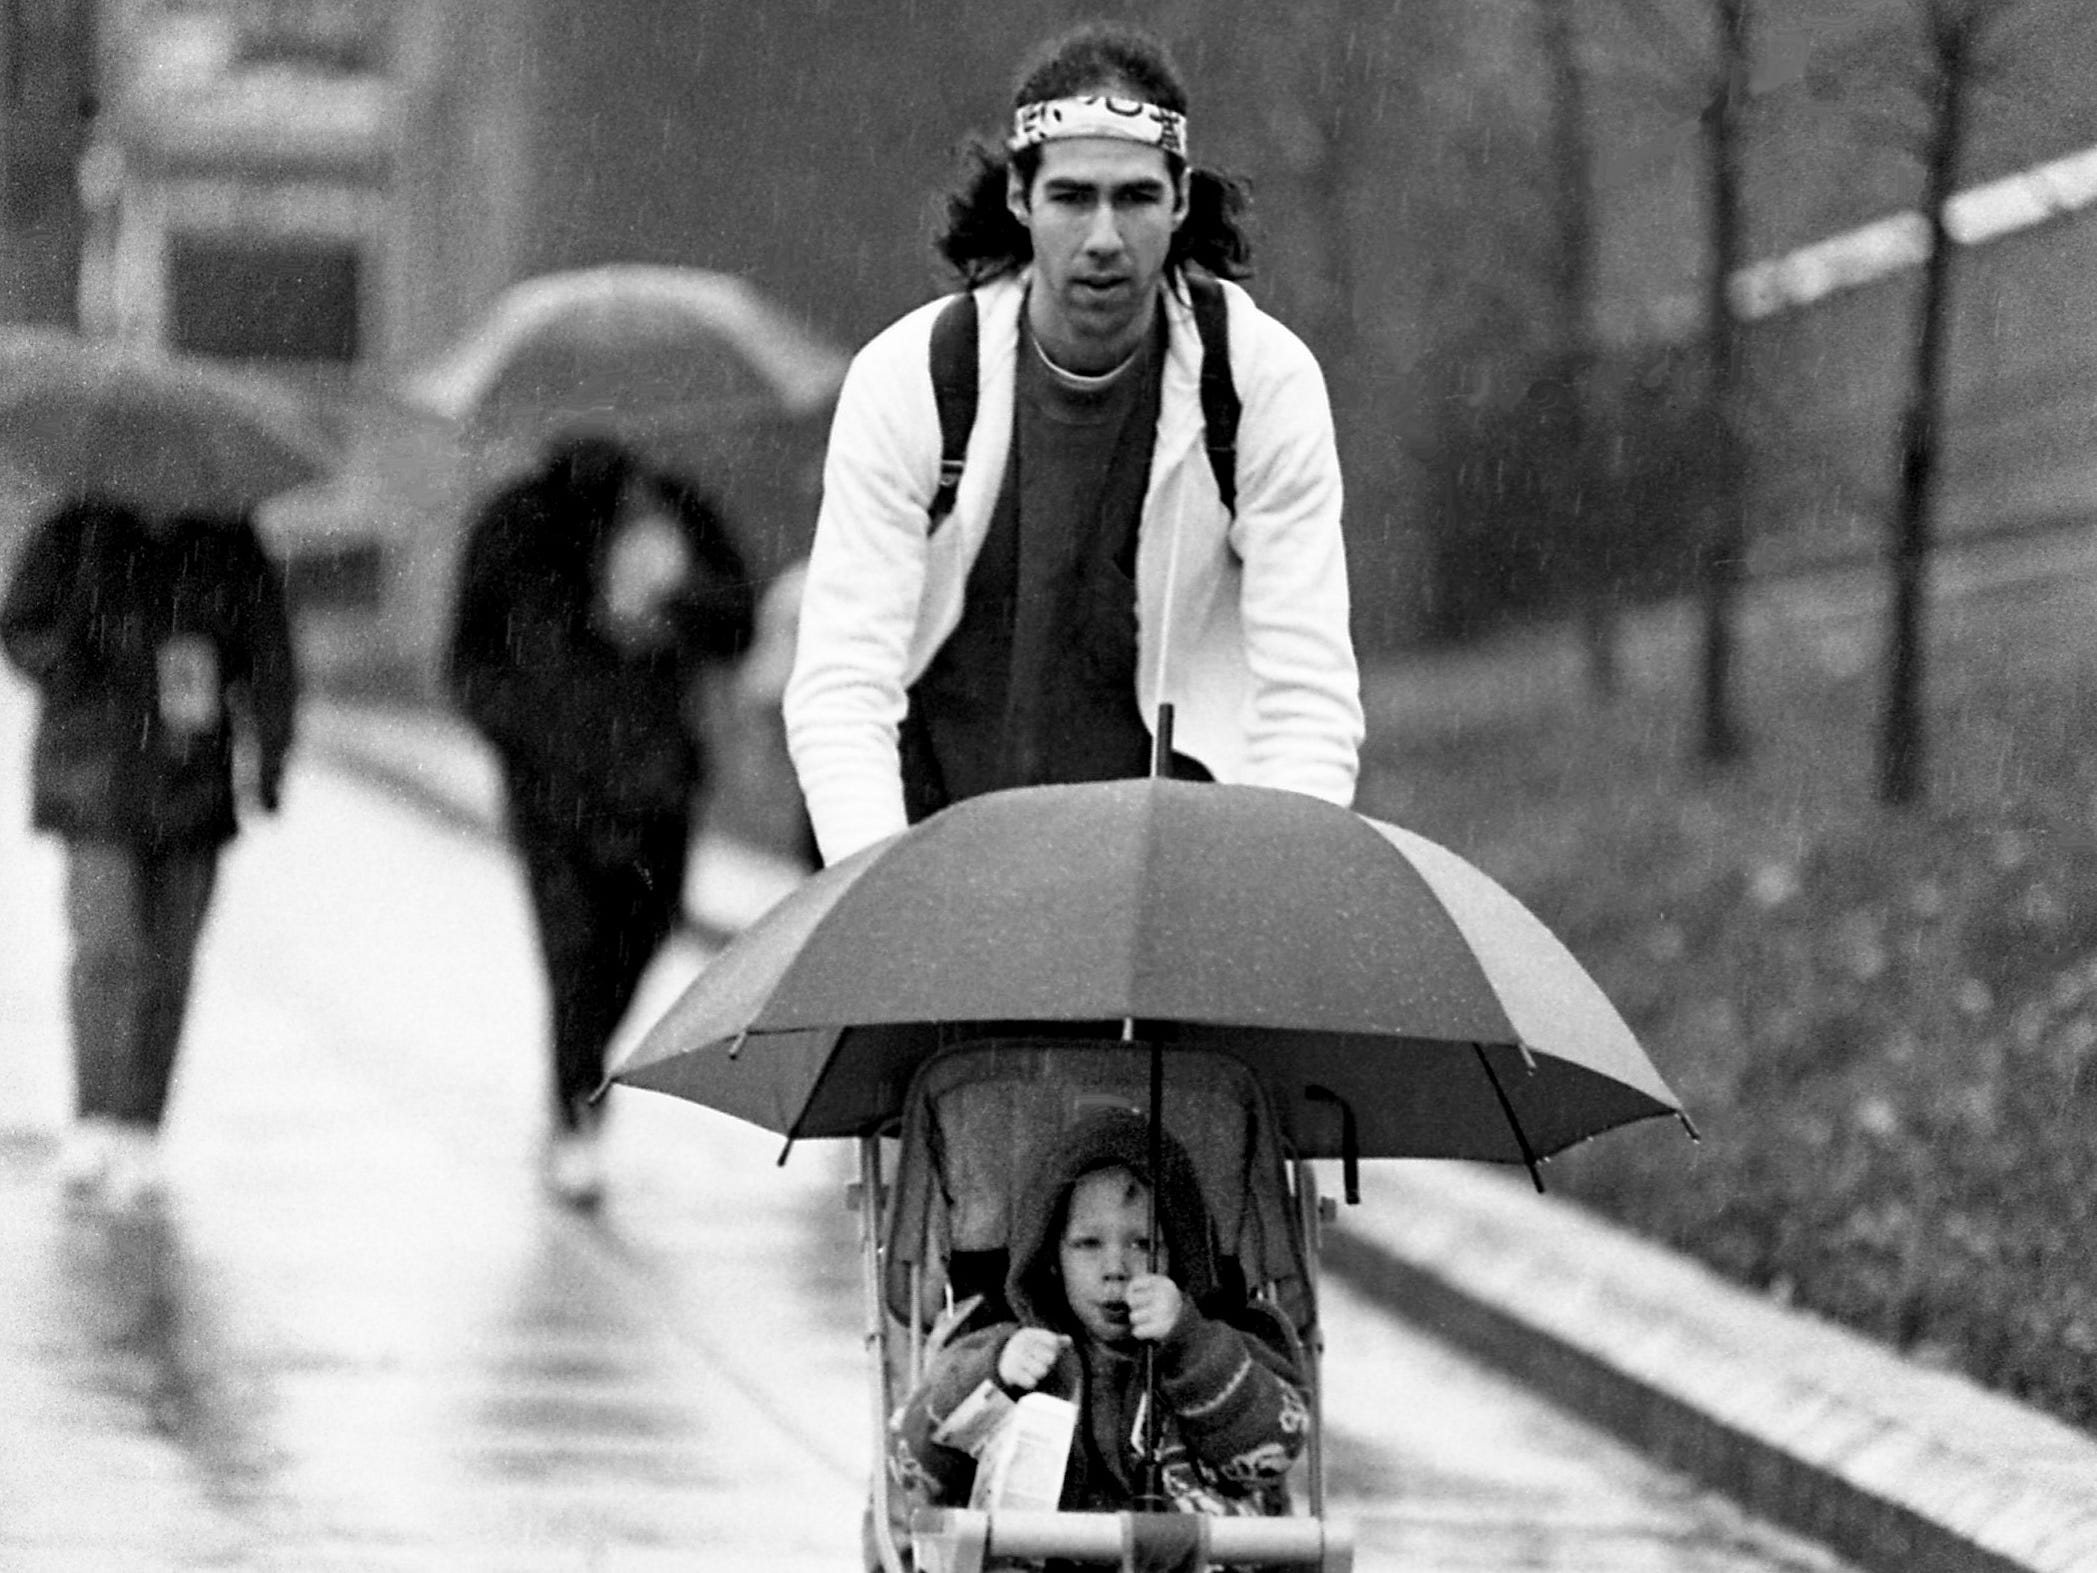 Eric Talbot, 2½, keeps dry while dad Bryan keeps going during the AIDWALK Nashville that drew 150 participants March 18, 1989, despite the rainy, cool weather. Walkers, runners and a few folks in wheelchairs made the 6.2-mile trek from the Vanderbilt University's track through downtown Nashville and back to raise money for AIDS research.